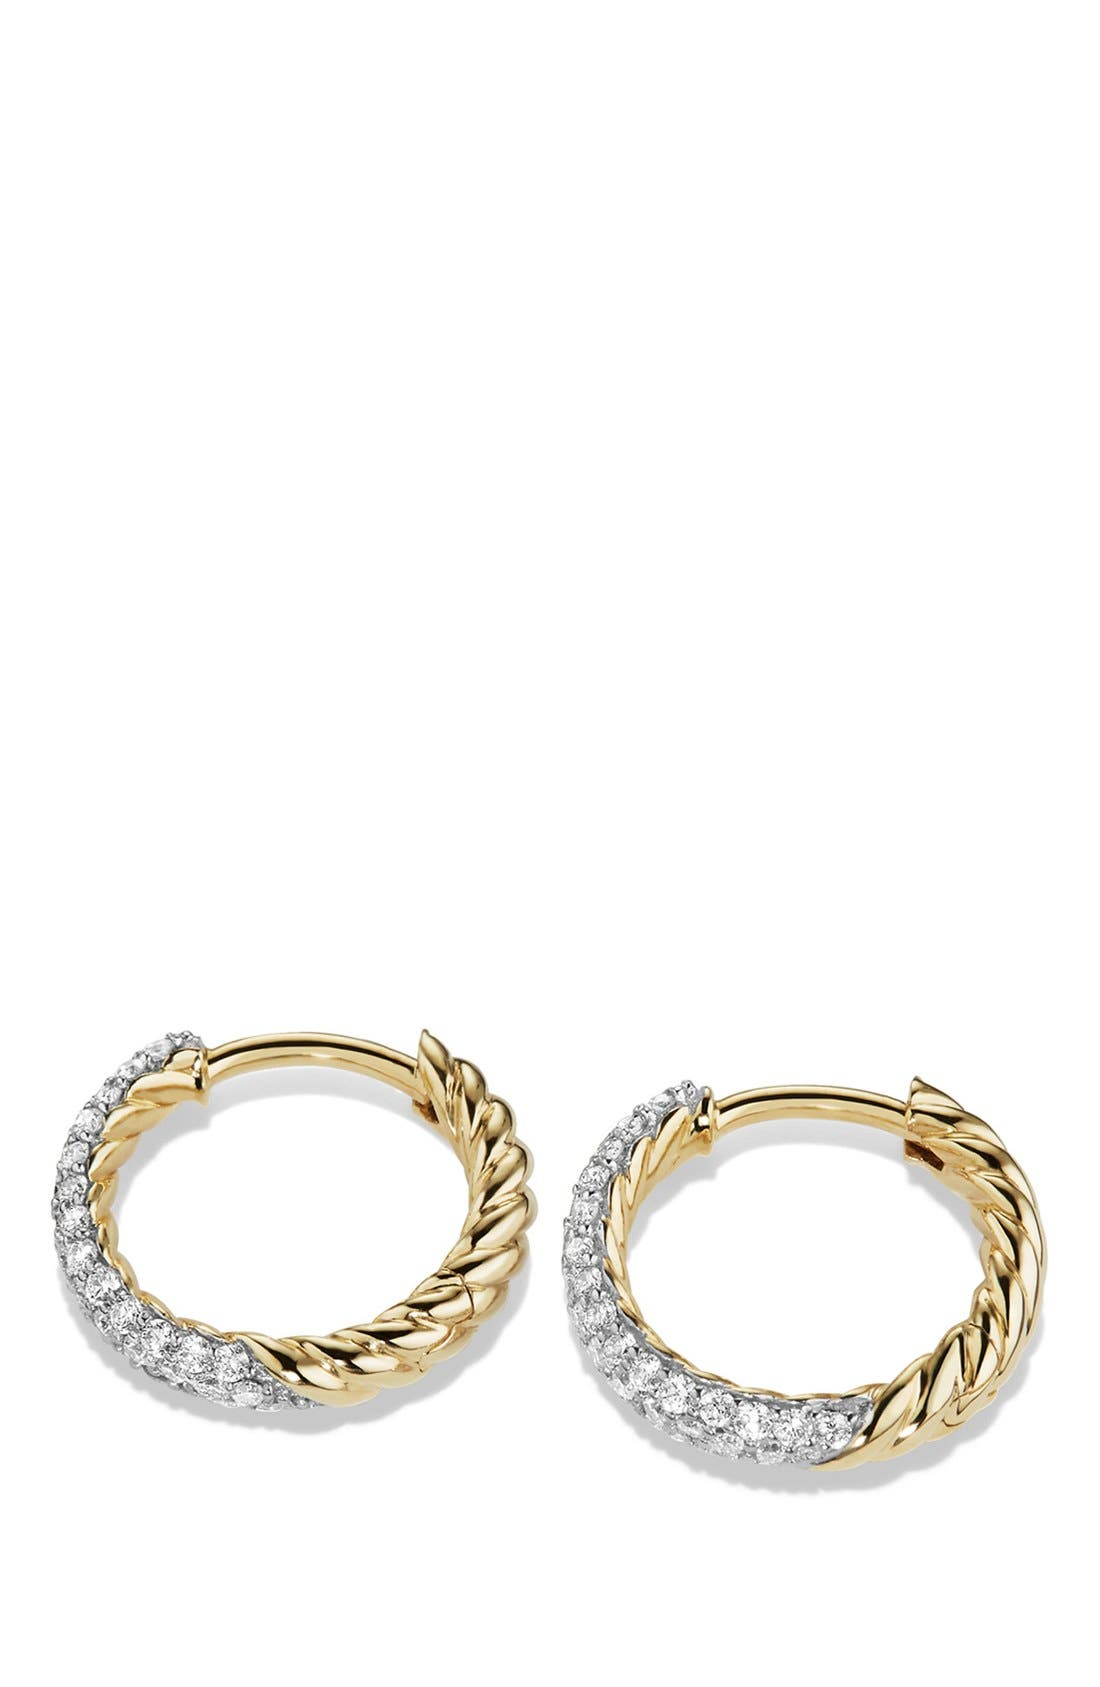 'Petite Pavé' Earrings with Diamonds in 18K Gold,                             Alternate thumbnail 3, color,                             GOLD